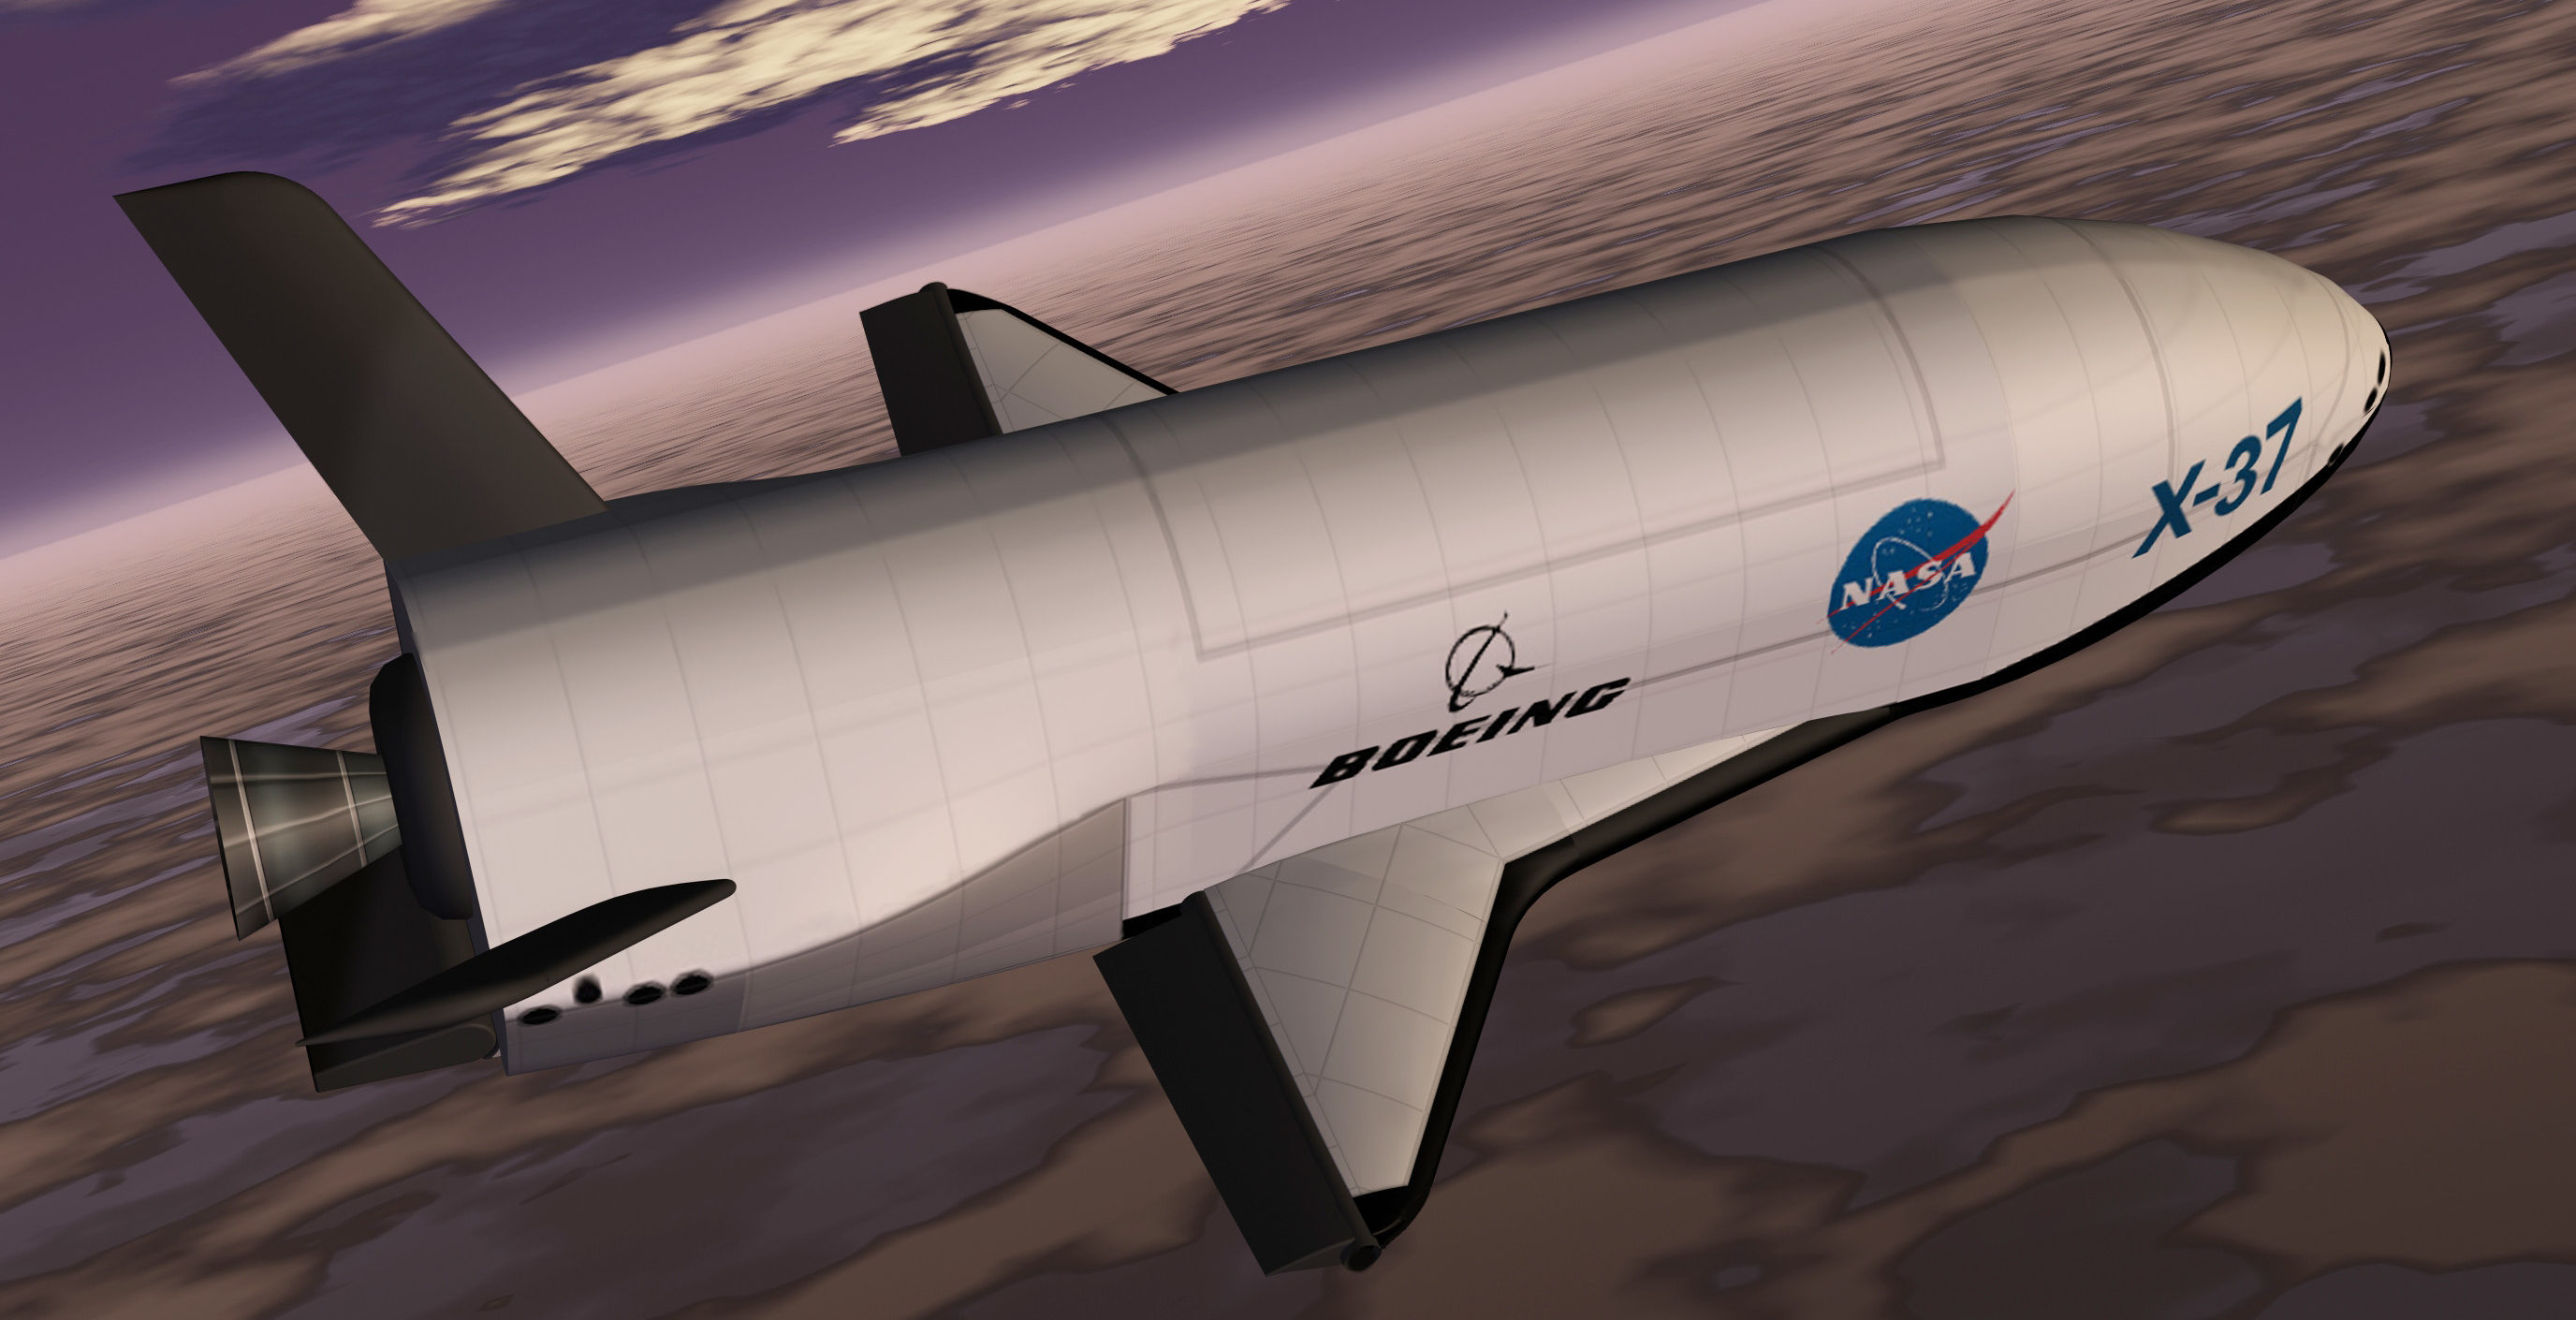 Inside the US Air Force's Top-Secret X-37B Space Plane